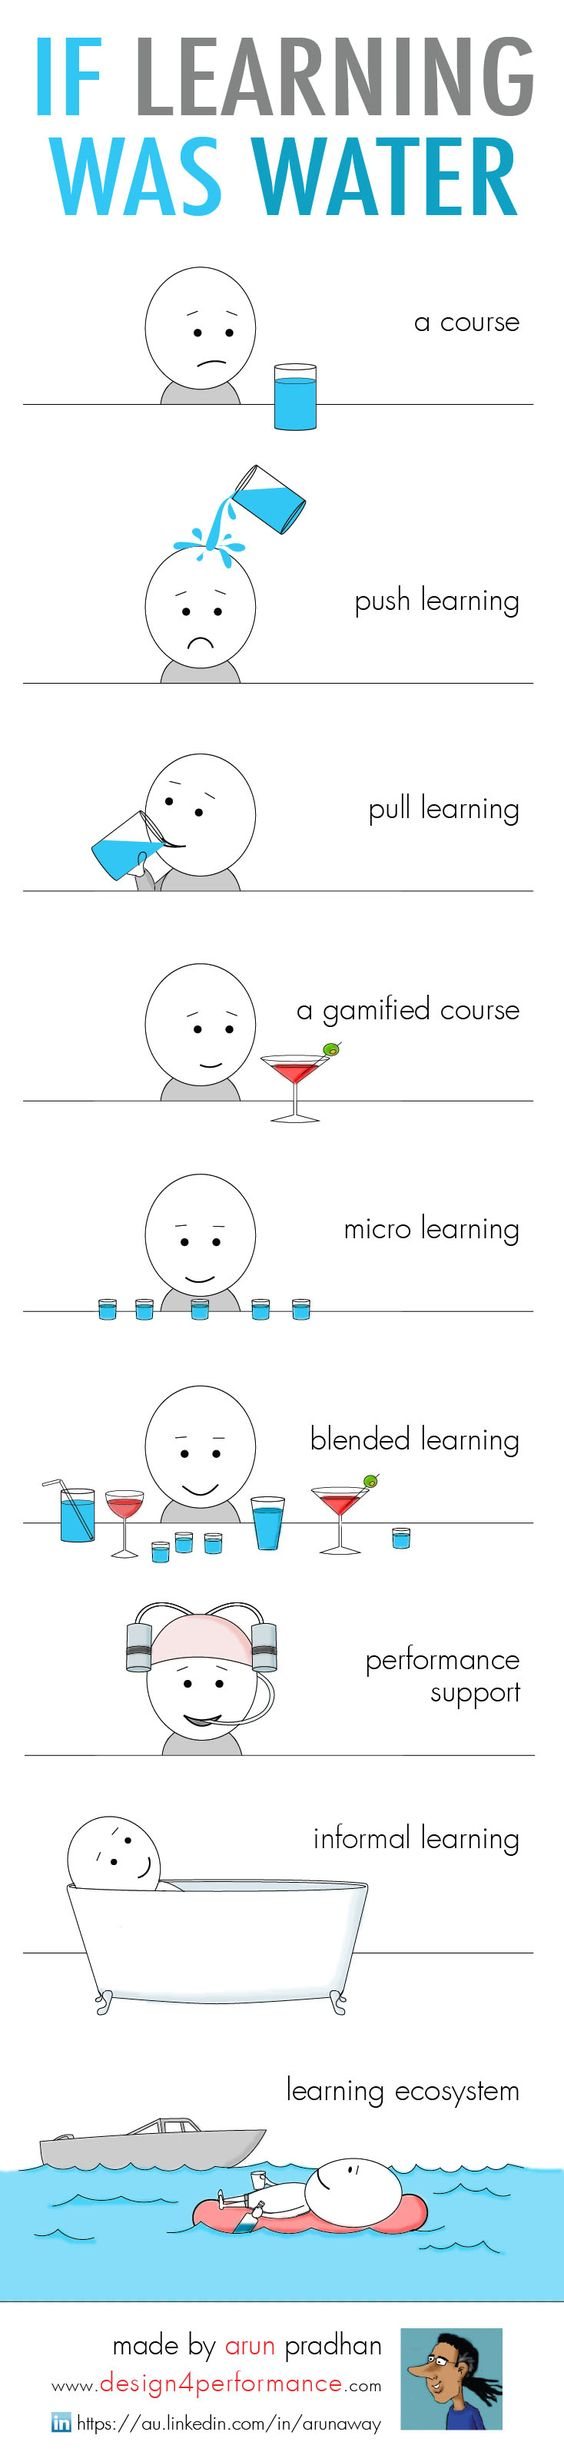 If Learning Was Water Infographic - http://elearninginfographics.com/learning-water-infographic/: